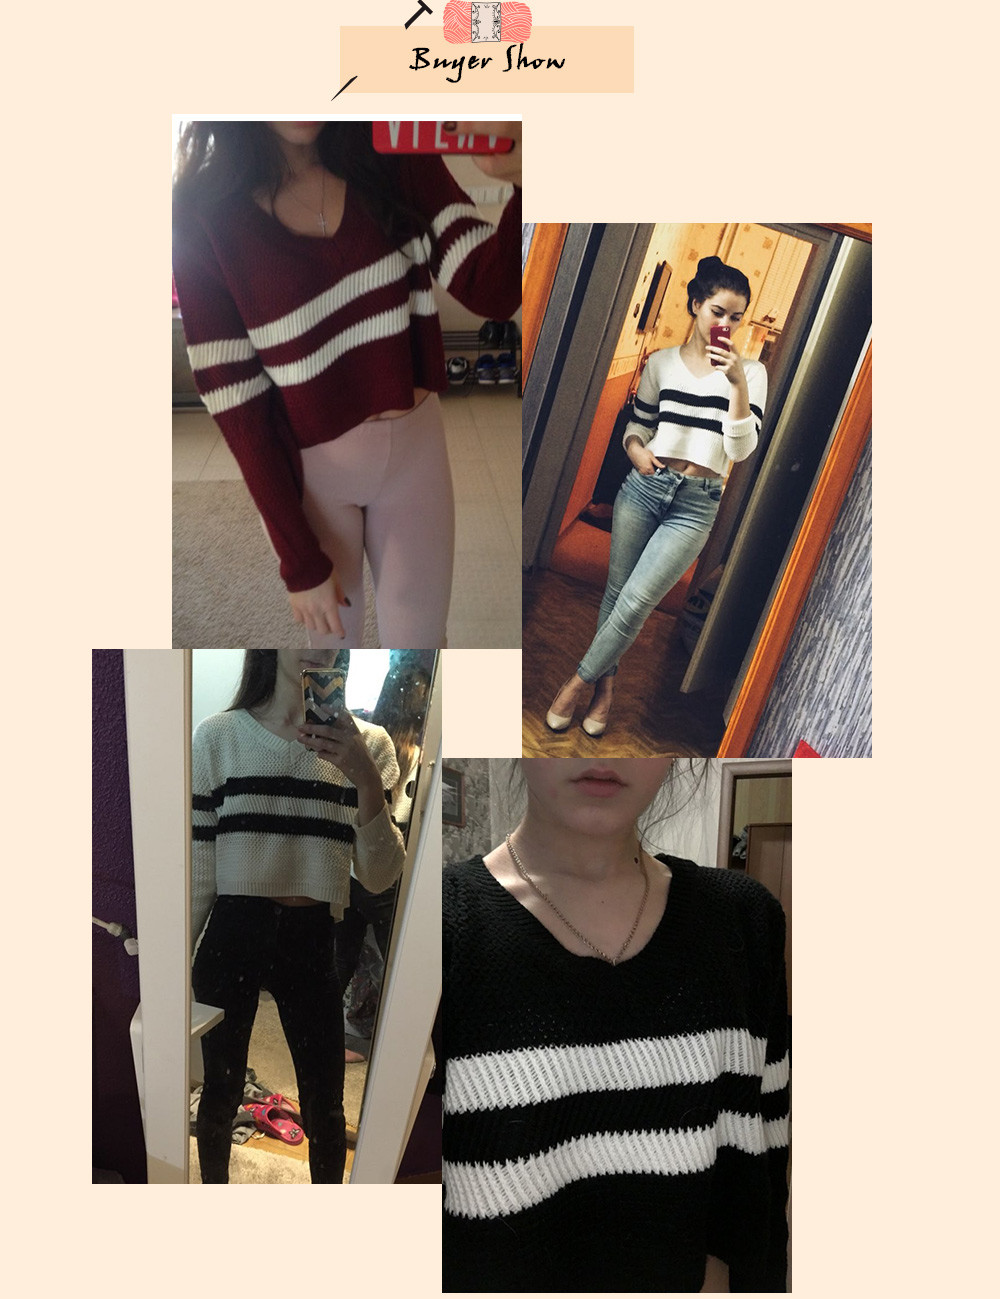 HTB15w9dOVXXXXcCXXXXq6xXFXXXC - 4 Colors V-neck Striped Long Sleeve Knitted Sweater PTC 263